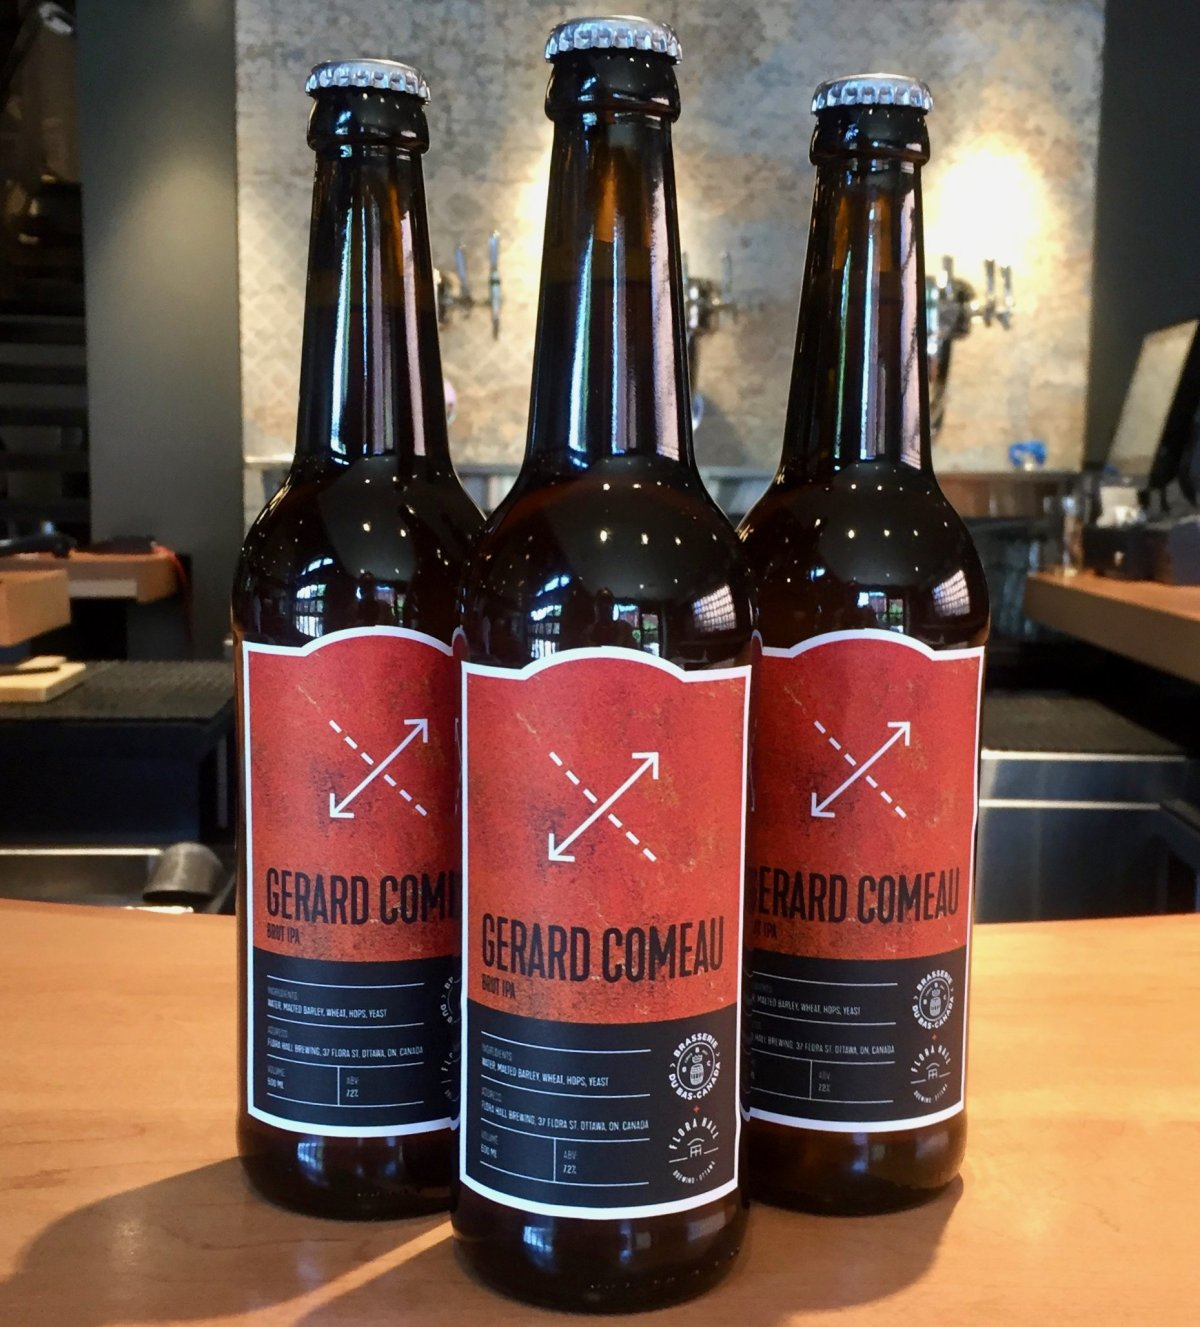 Ottawa's Flora Hall Brewing and Gatineau's Brasserie du Bas-Canada brewed their new Brut IPA in two locations so they could sell it in both Ontario and Quebec.